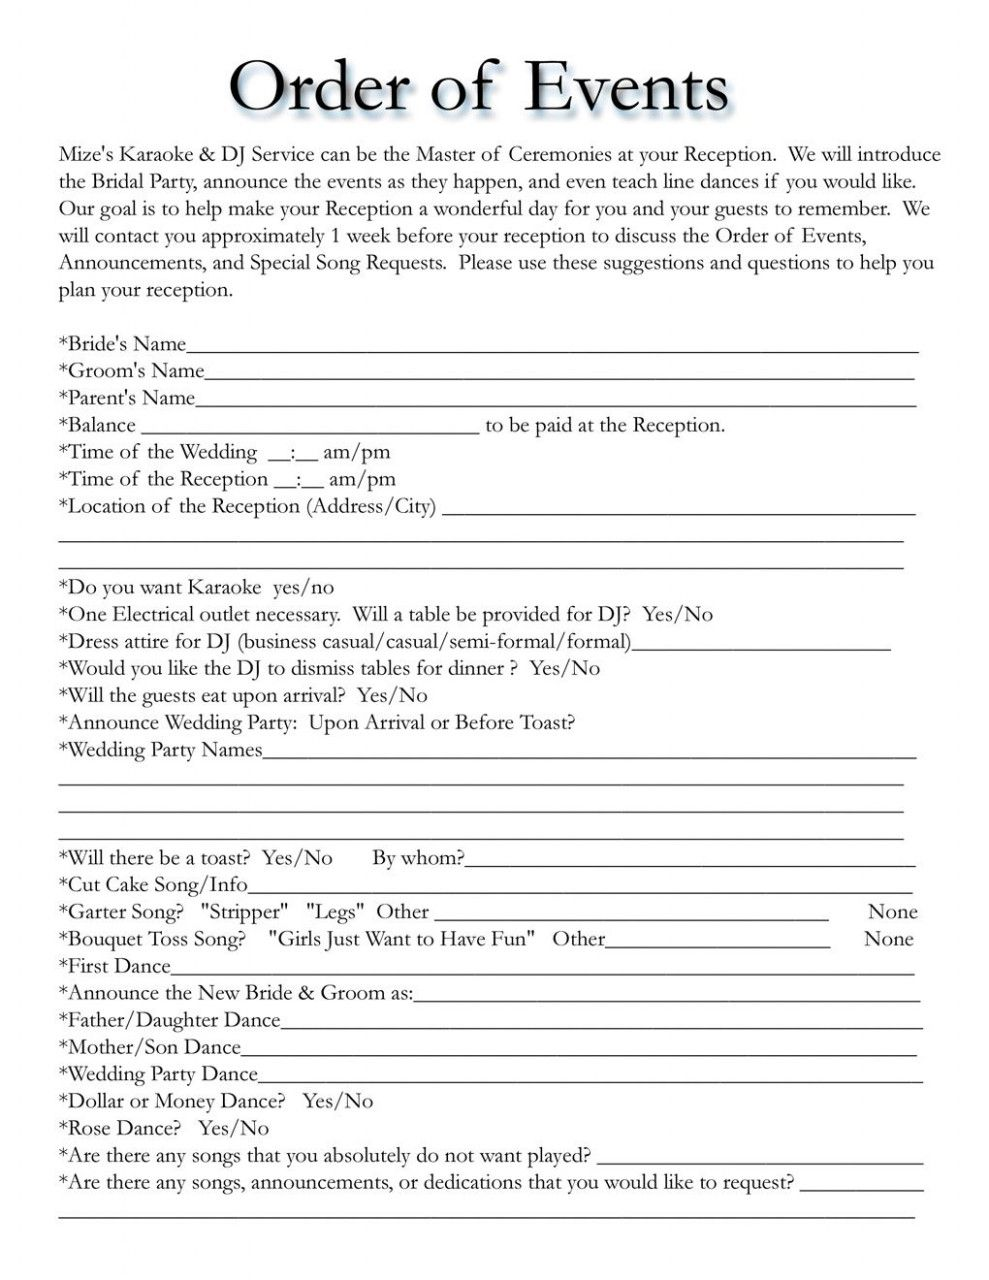 Wedding Itinerary Templates Free Wedding Template Projects To Try Pinterest Wedding Wedding Reception Timeline Wedding Itinerary Wedding Day Timeline Template Wedding schedule of events template